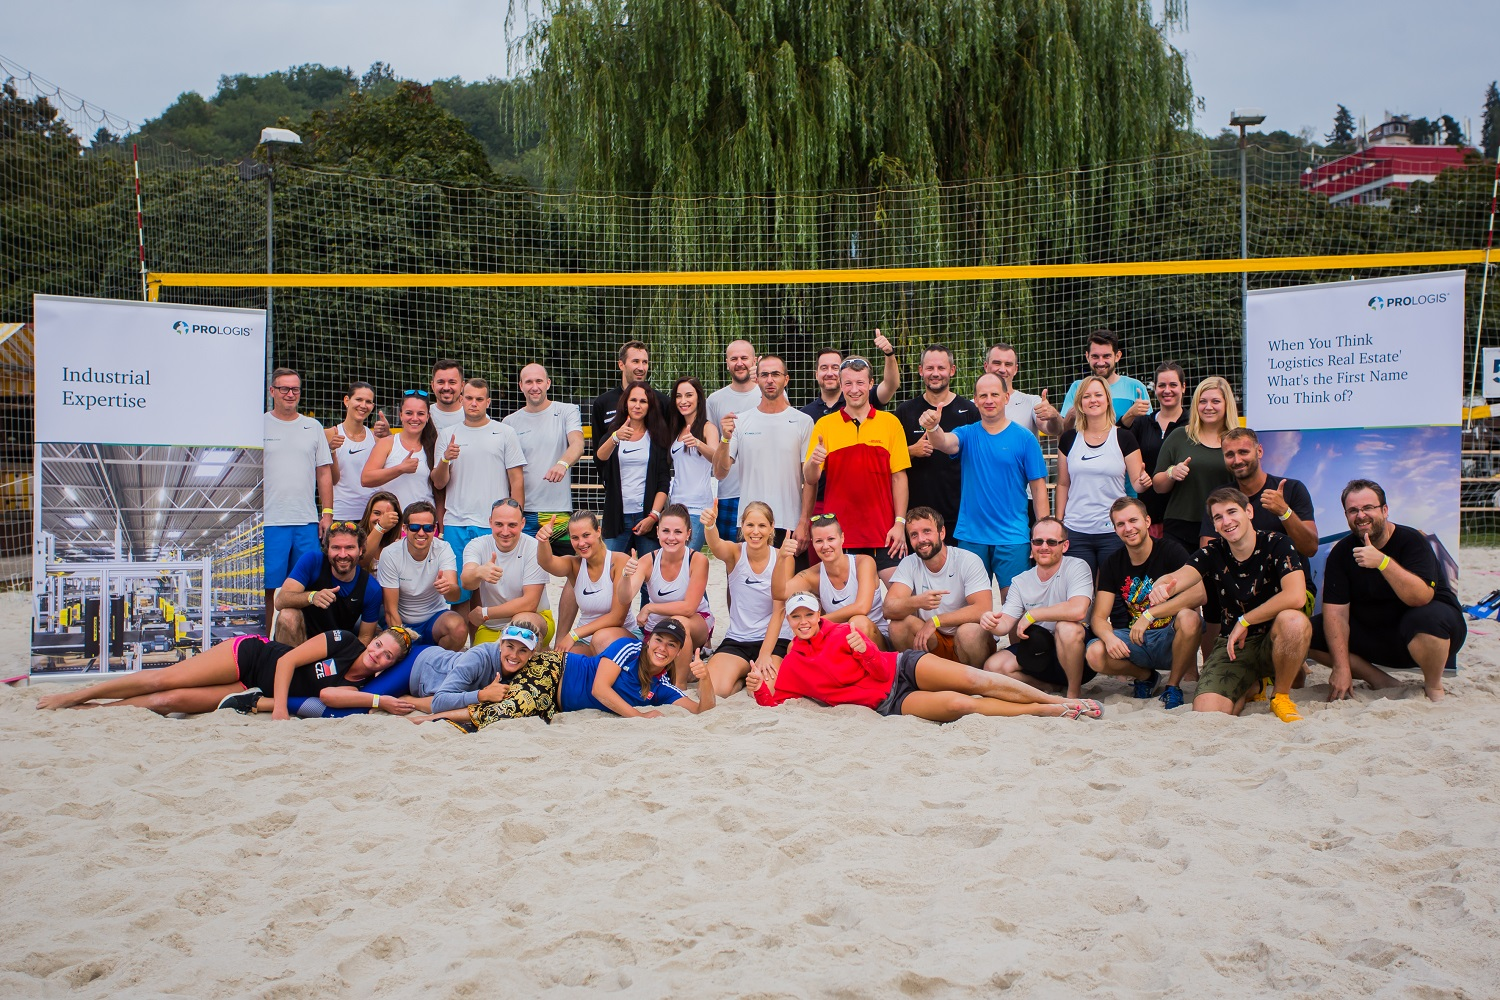 Prologis Volleyball Tournament 2018, Czech Republic